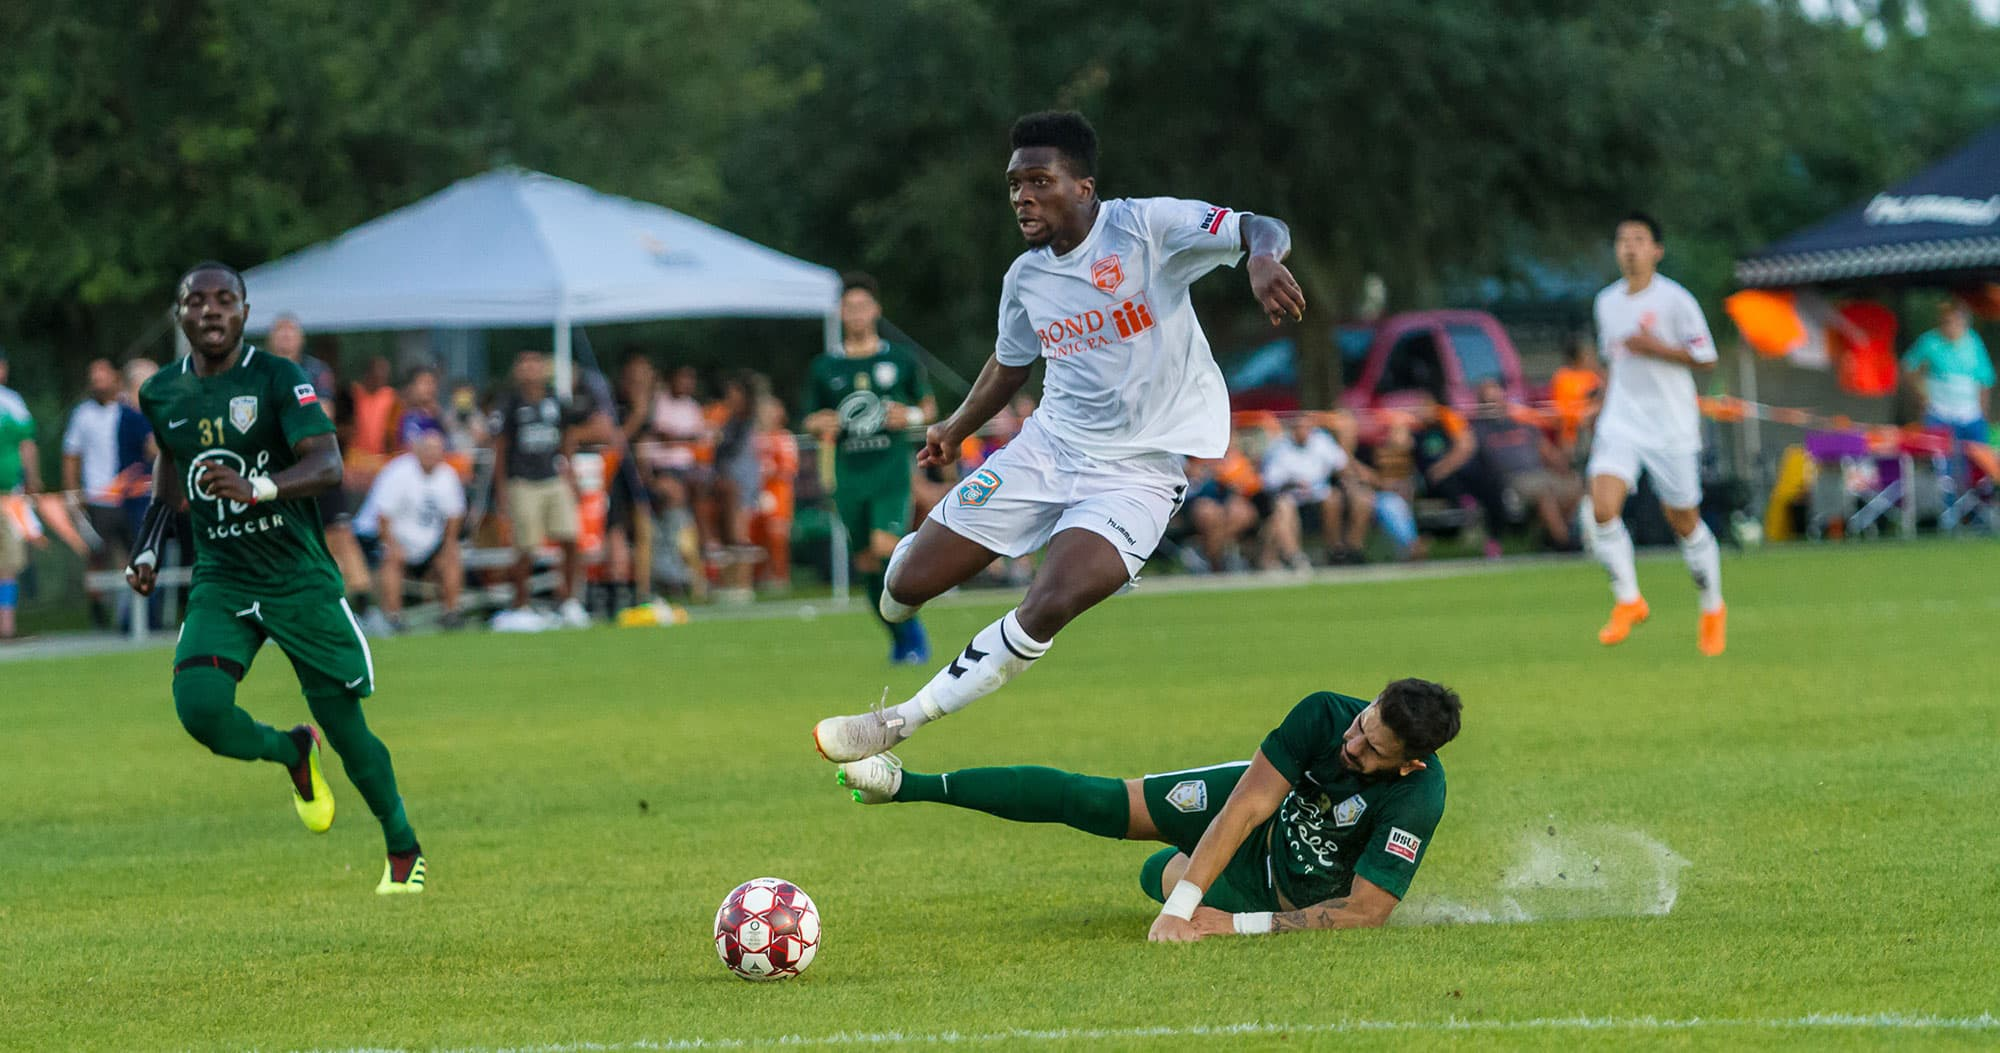 soccer player jumping over opponent to get to ball during Florida Tropics Soccer game at Lake Myrtle Sports Complex in Auburndale